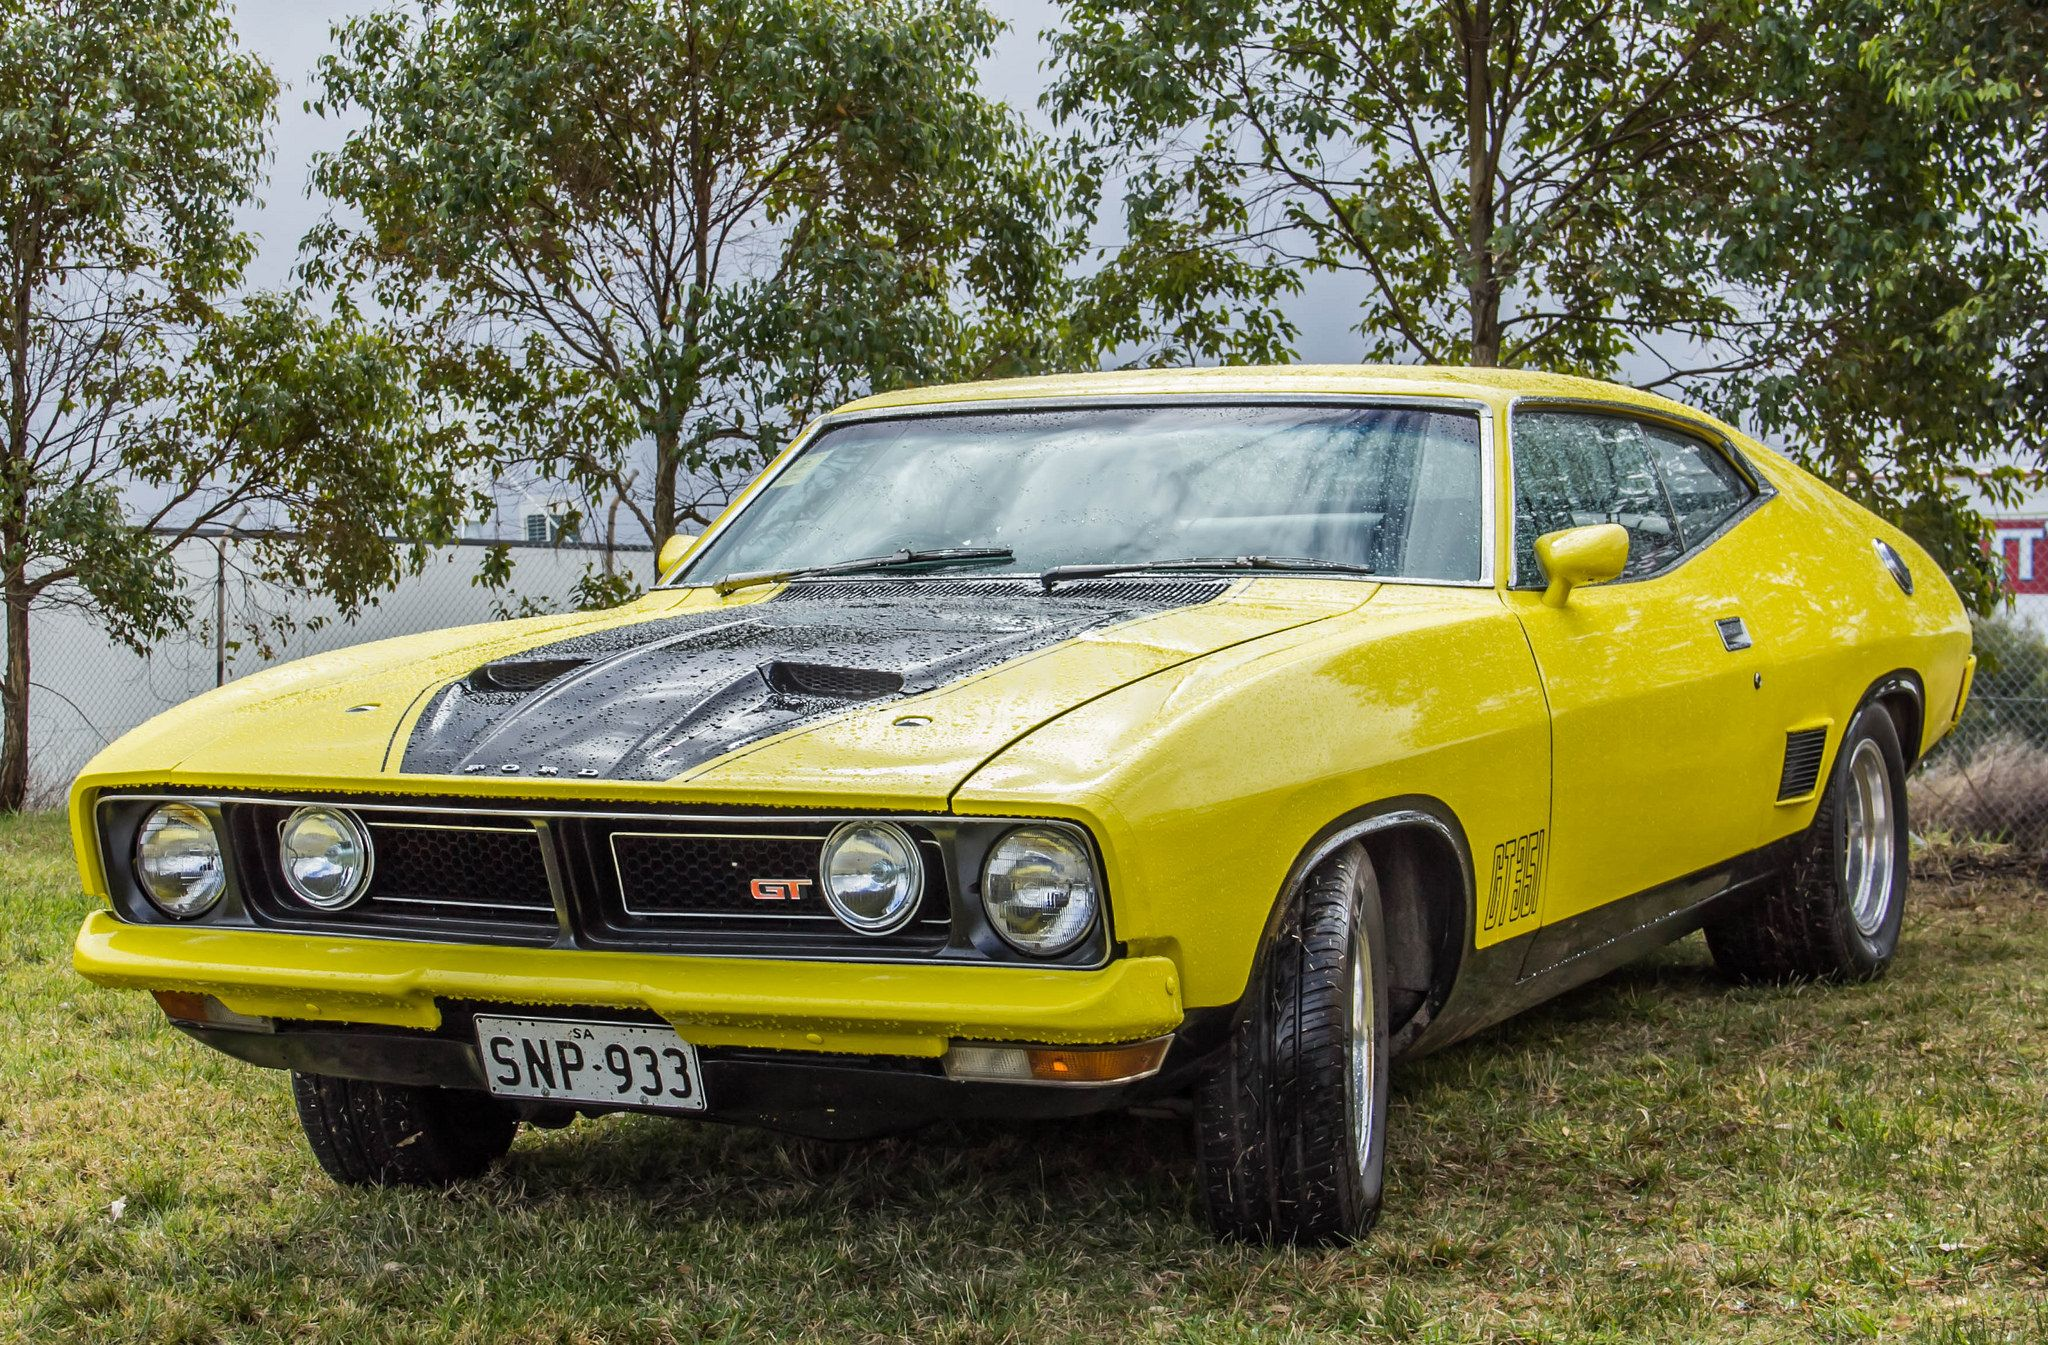 Ford Falcon Xb Gt Hardtop Aussie Muscle Cars Ford Falcon Old Muscle Cars